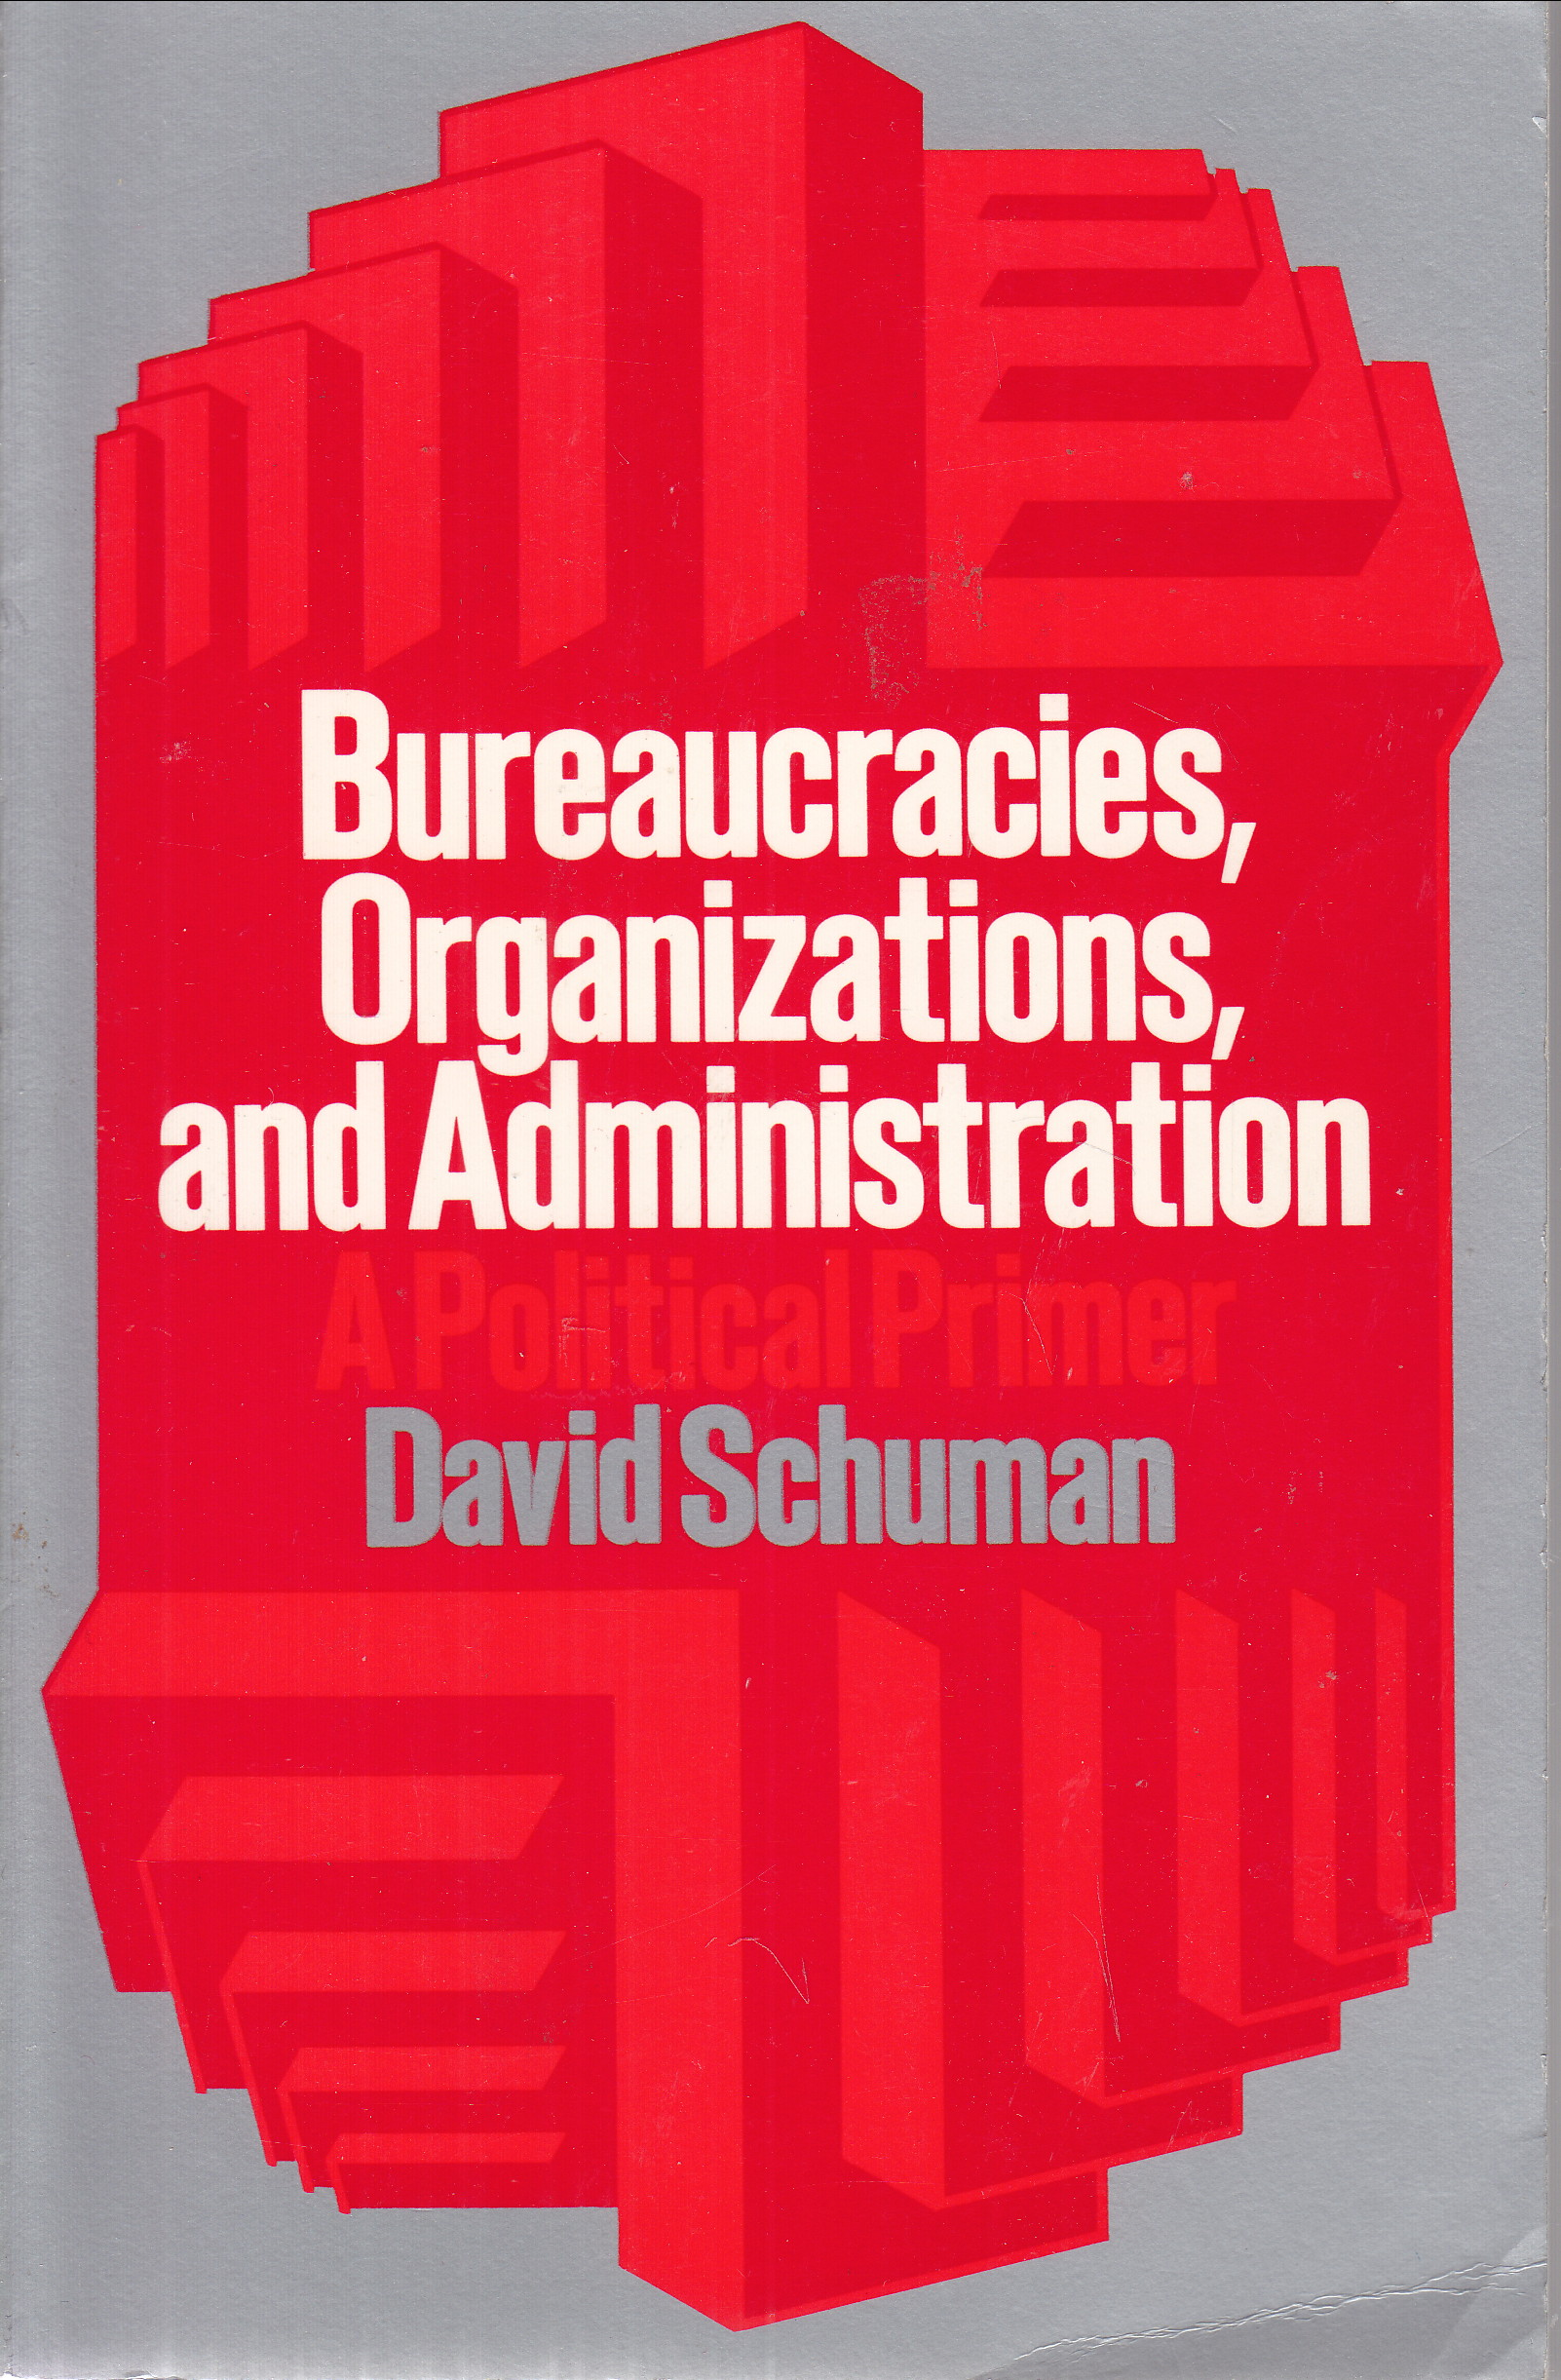 Image for Beaureacracies, Organizations, and Administration:  political primer